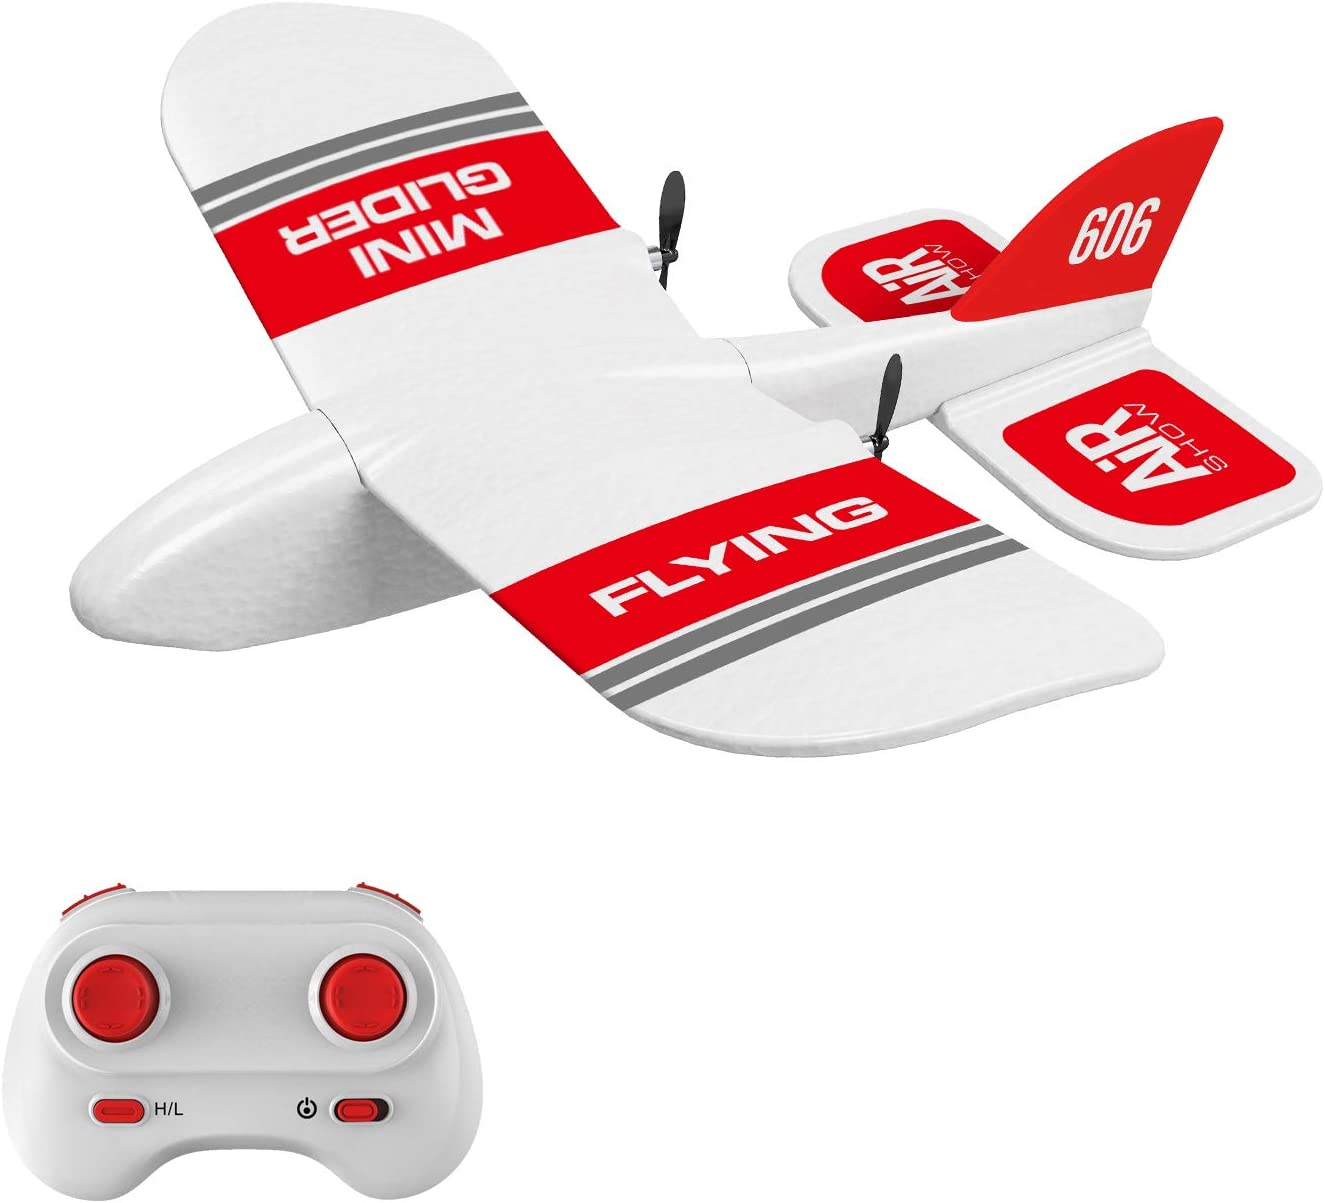 KF606 2.4Ghz Remote Control Airplane EPP Foam Fixed Wing Plane GoolRC RC Plane RTF Ready to Fly Gliding Aircraft Model Toys with 3 Battery for Beginner